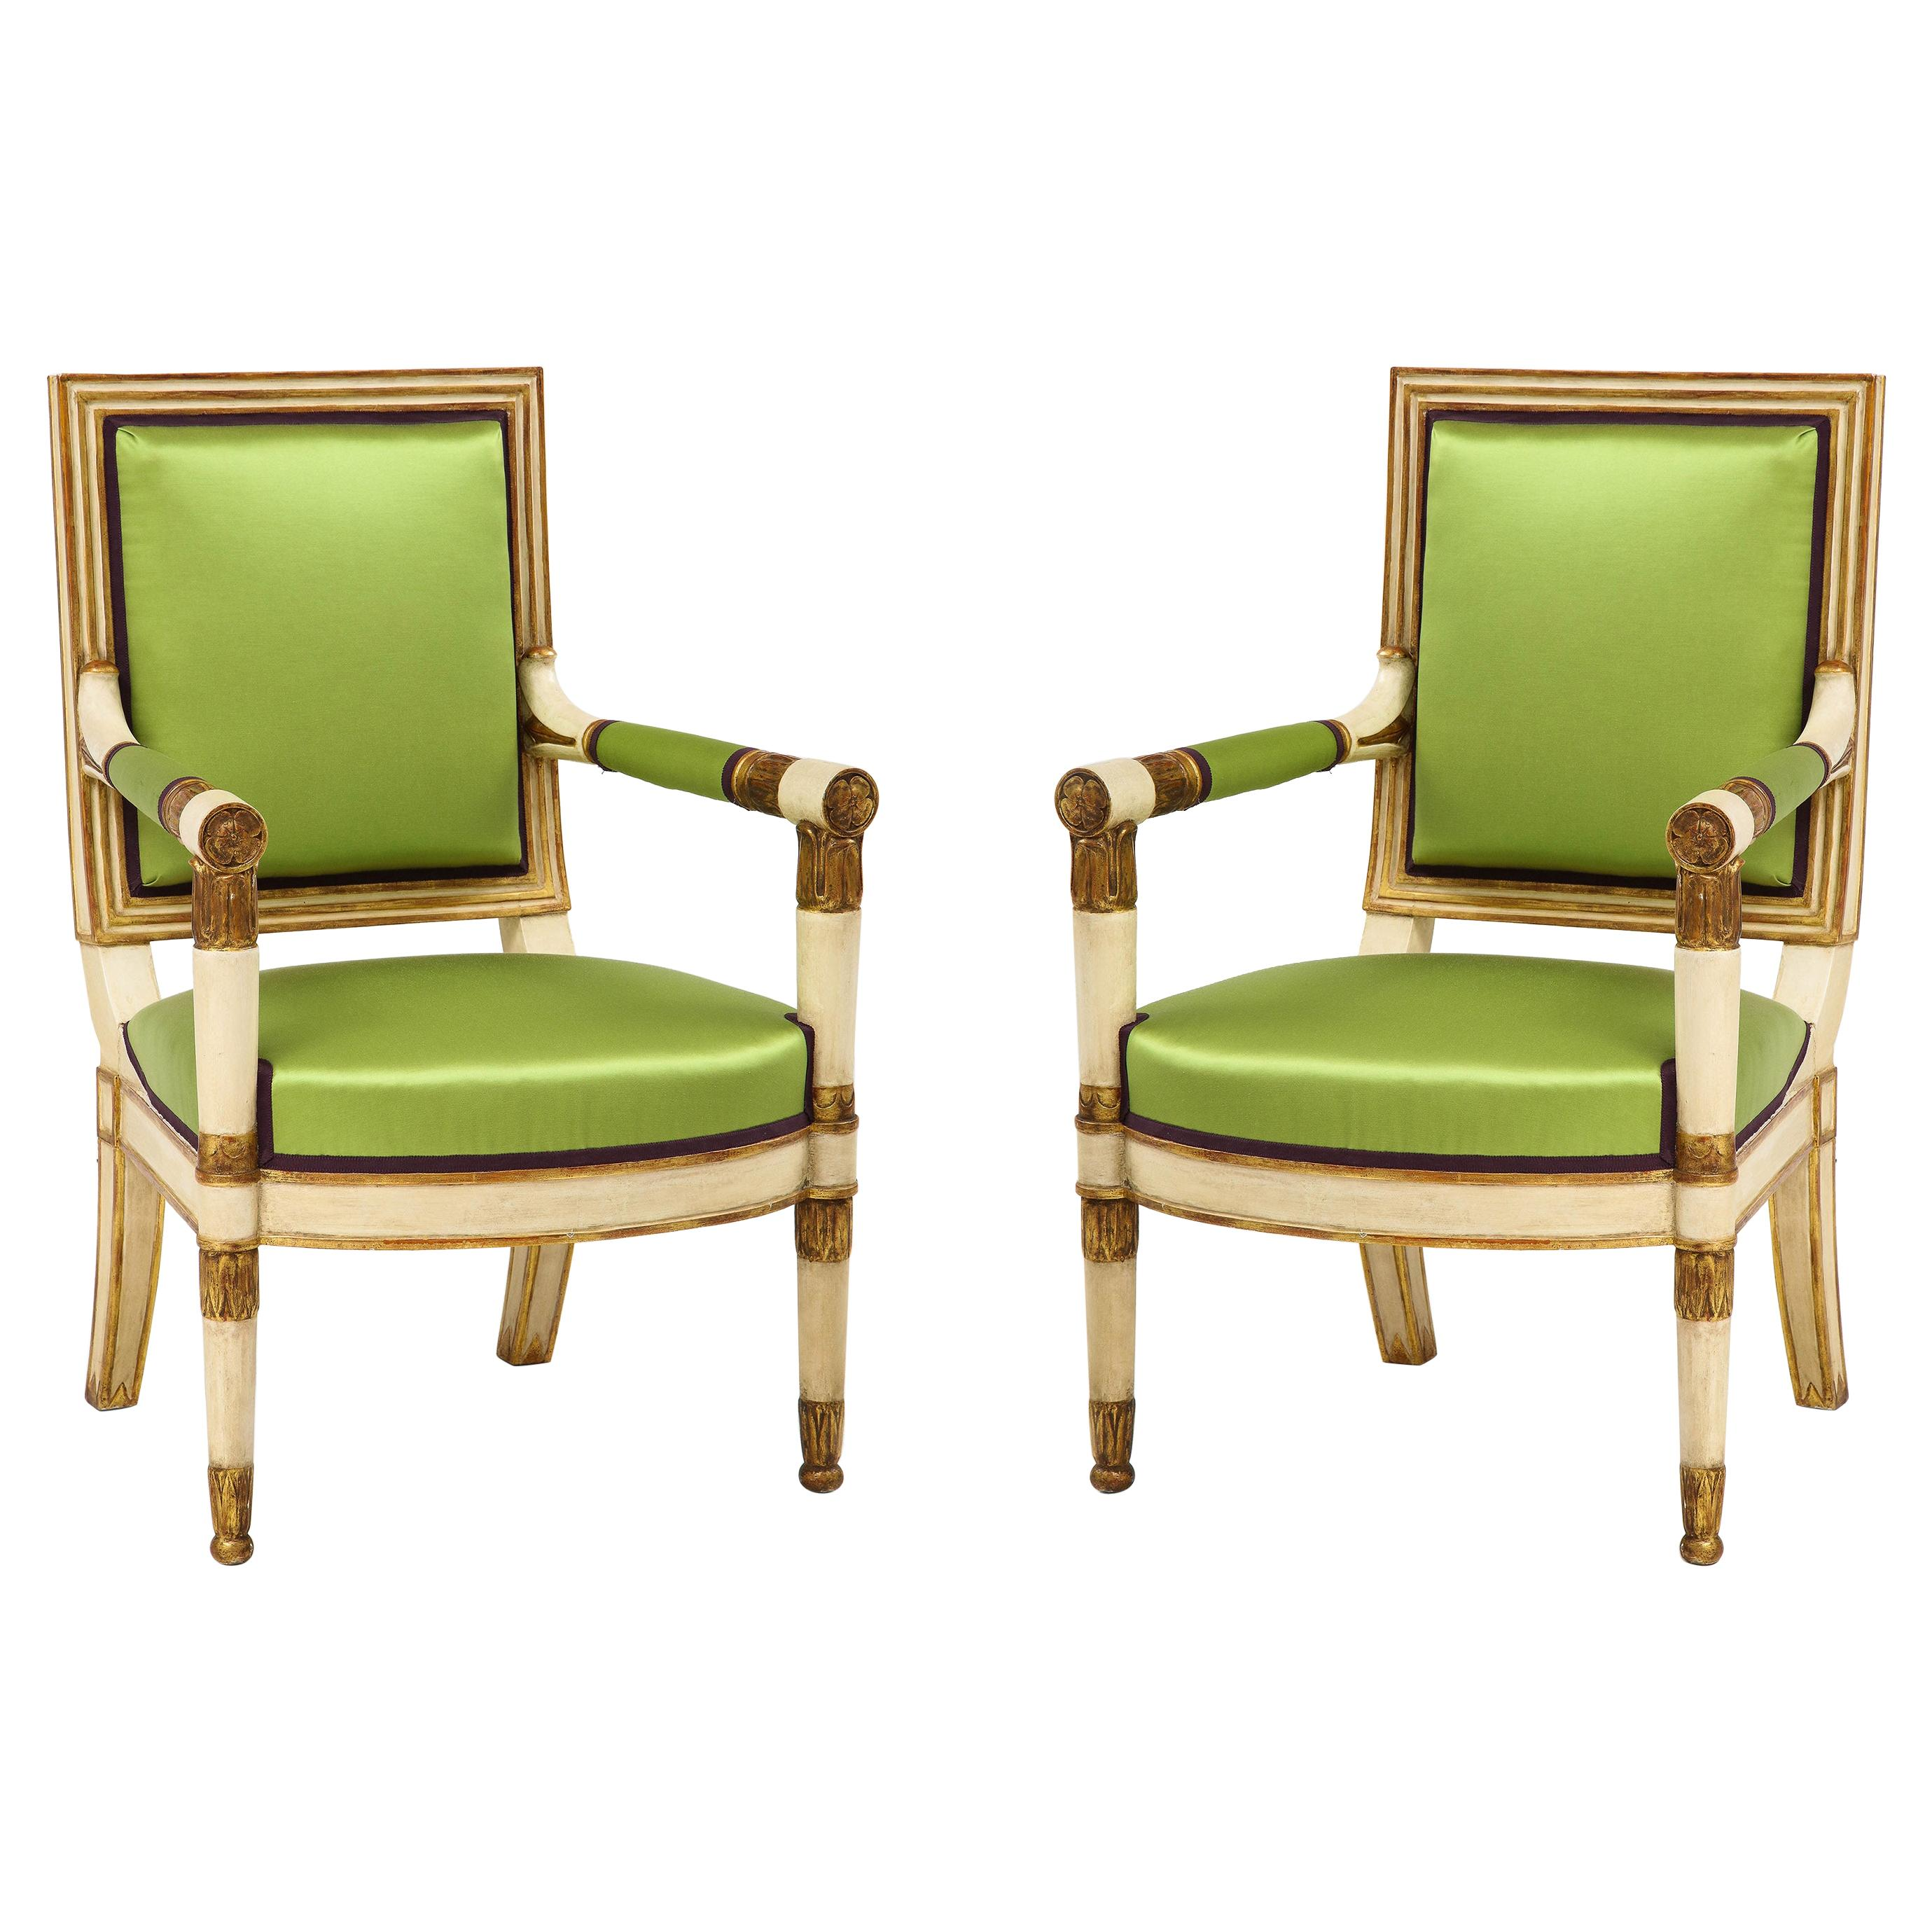 Pair of Painted and Parcel Gilt Empire Armchairs